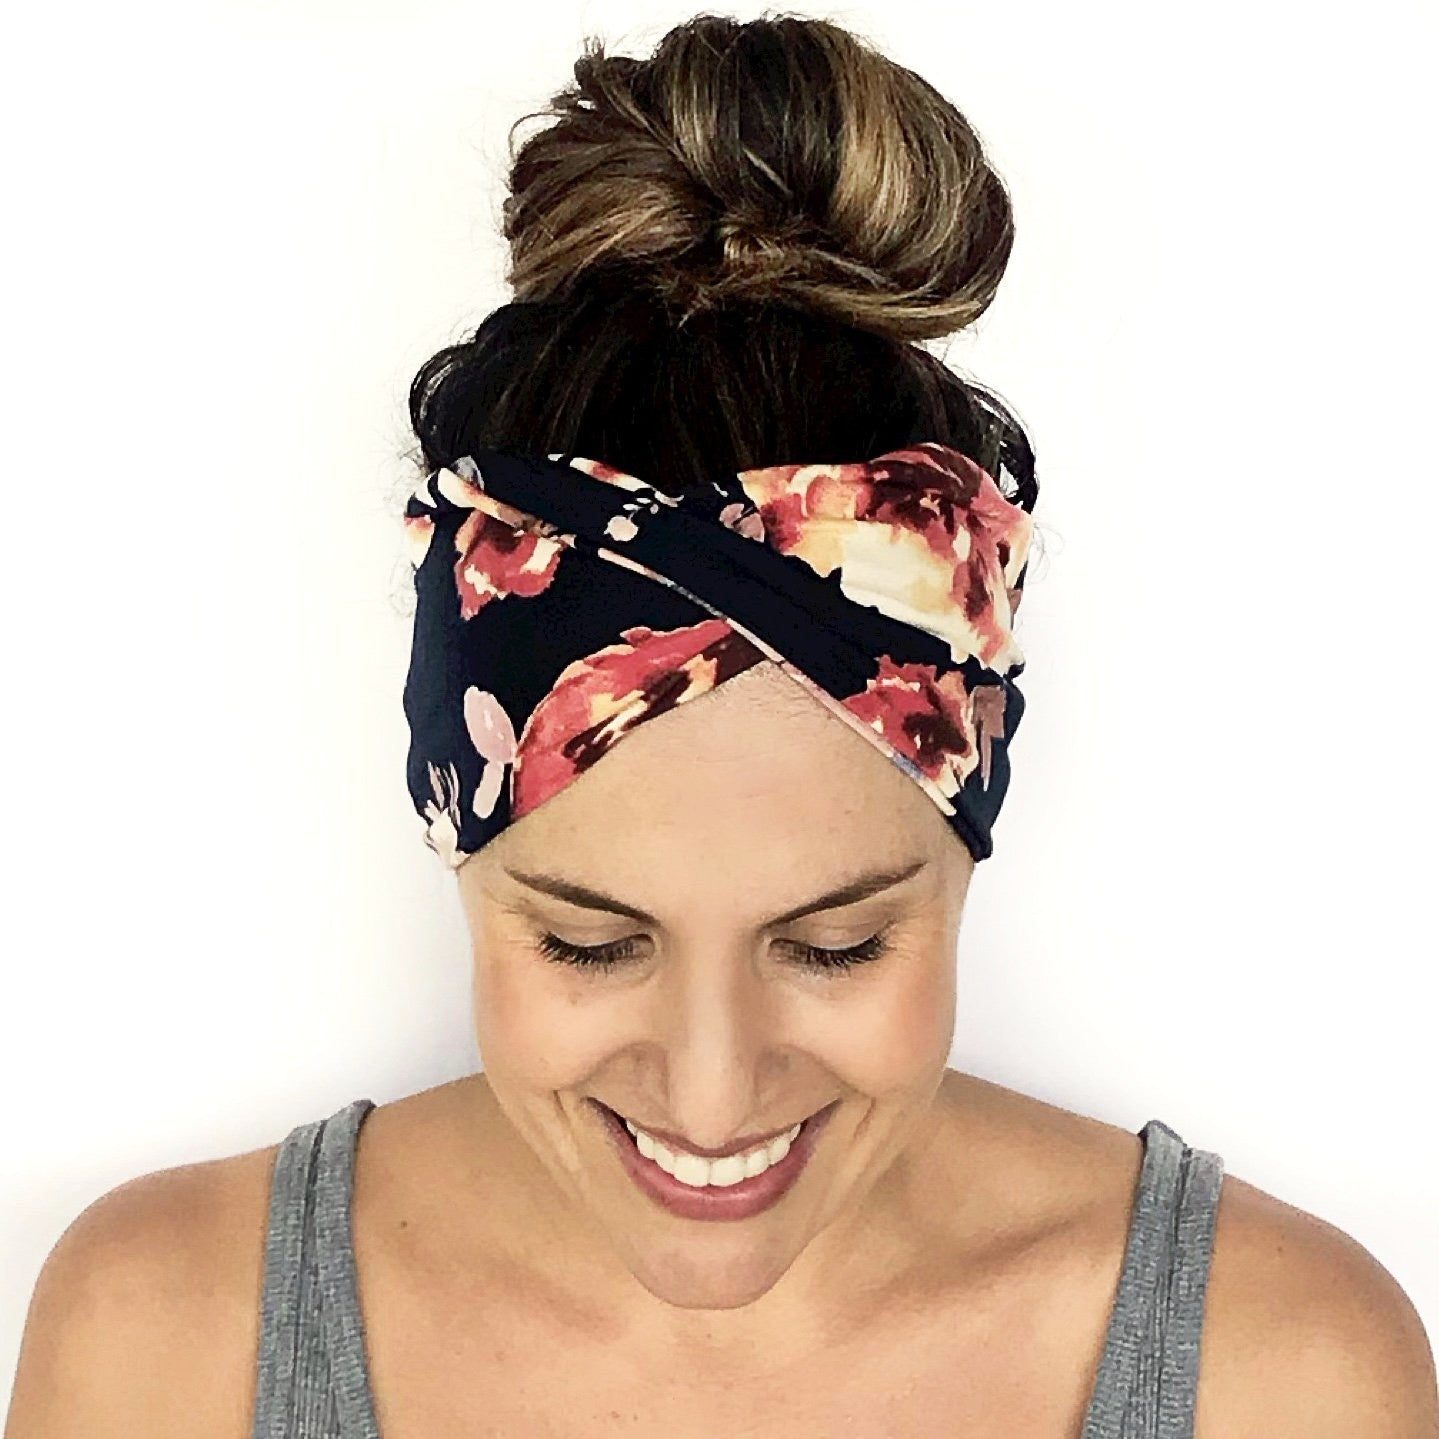 Hannah Double Twist Headband